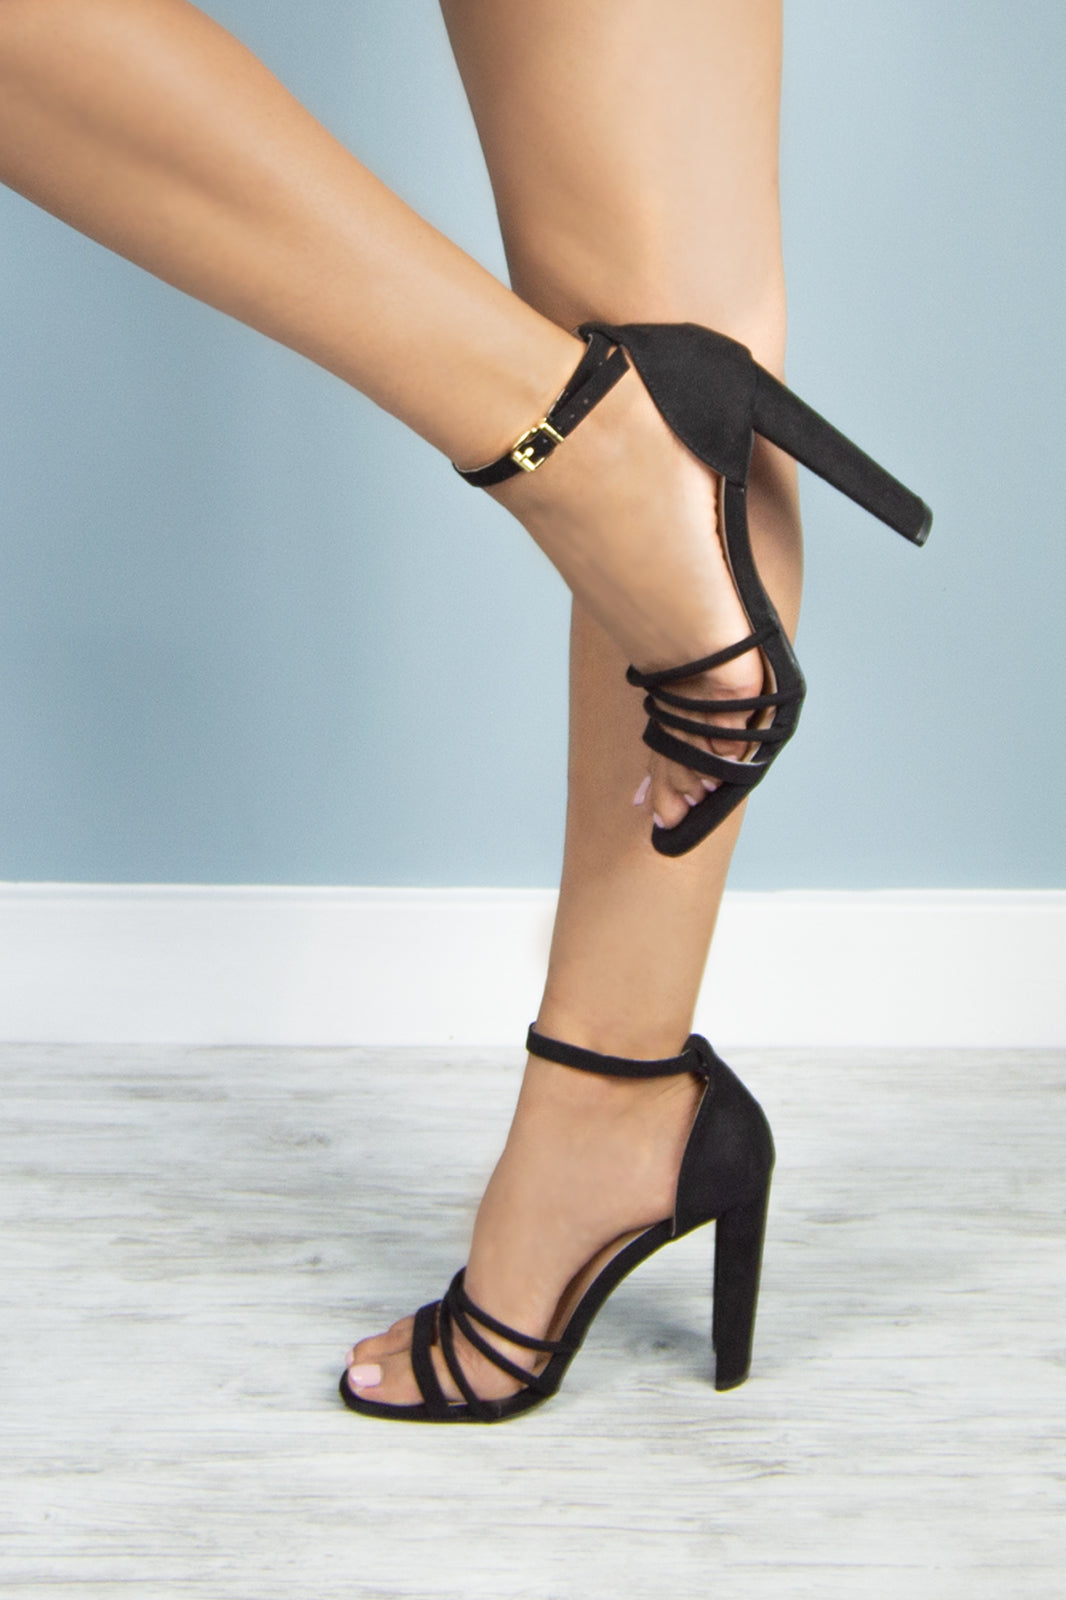 b0fa48e295c1d Milan - Black Strappy Heels – Iconic Fashion LA